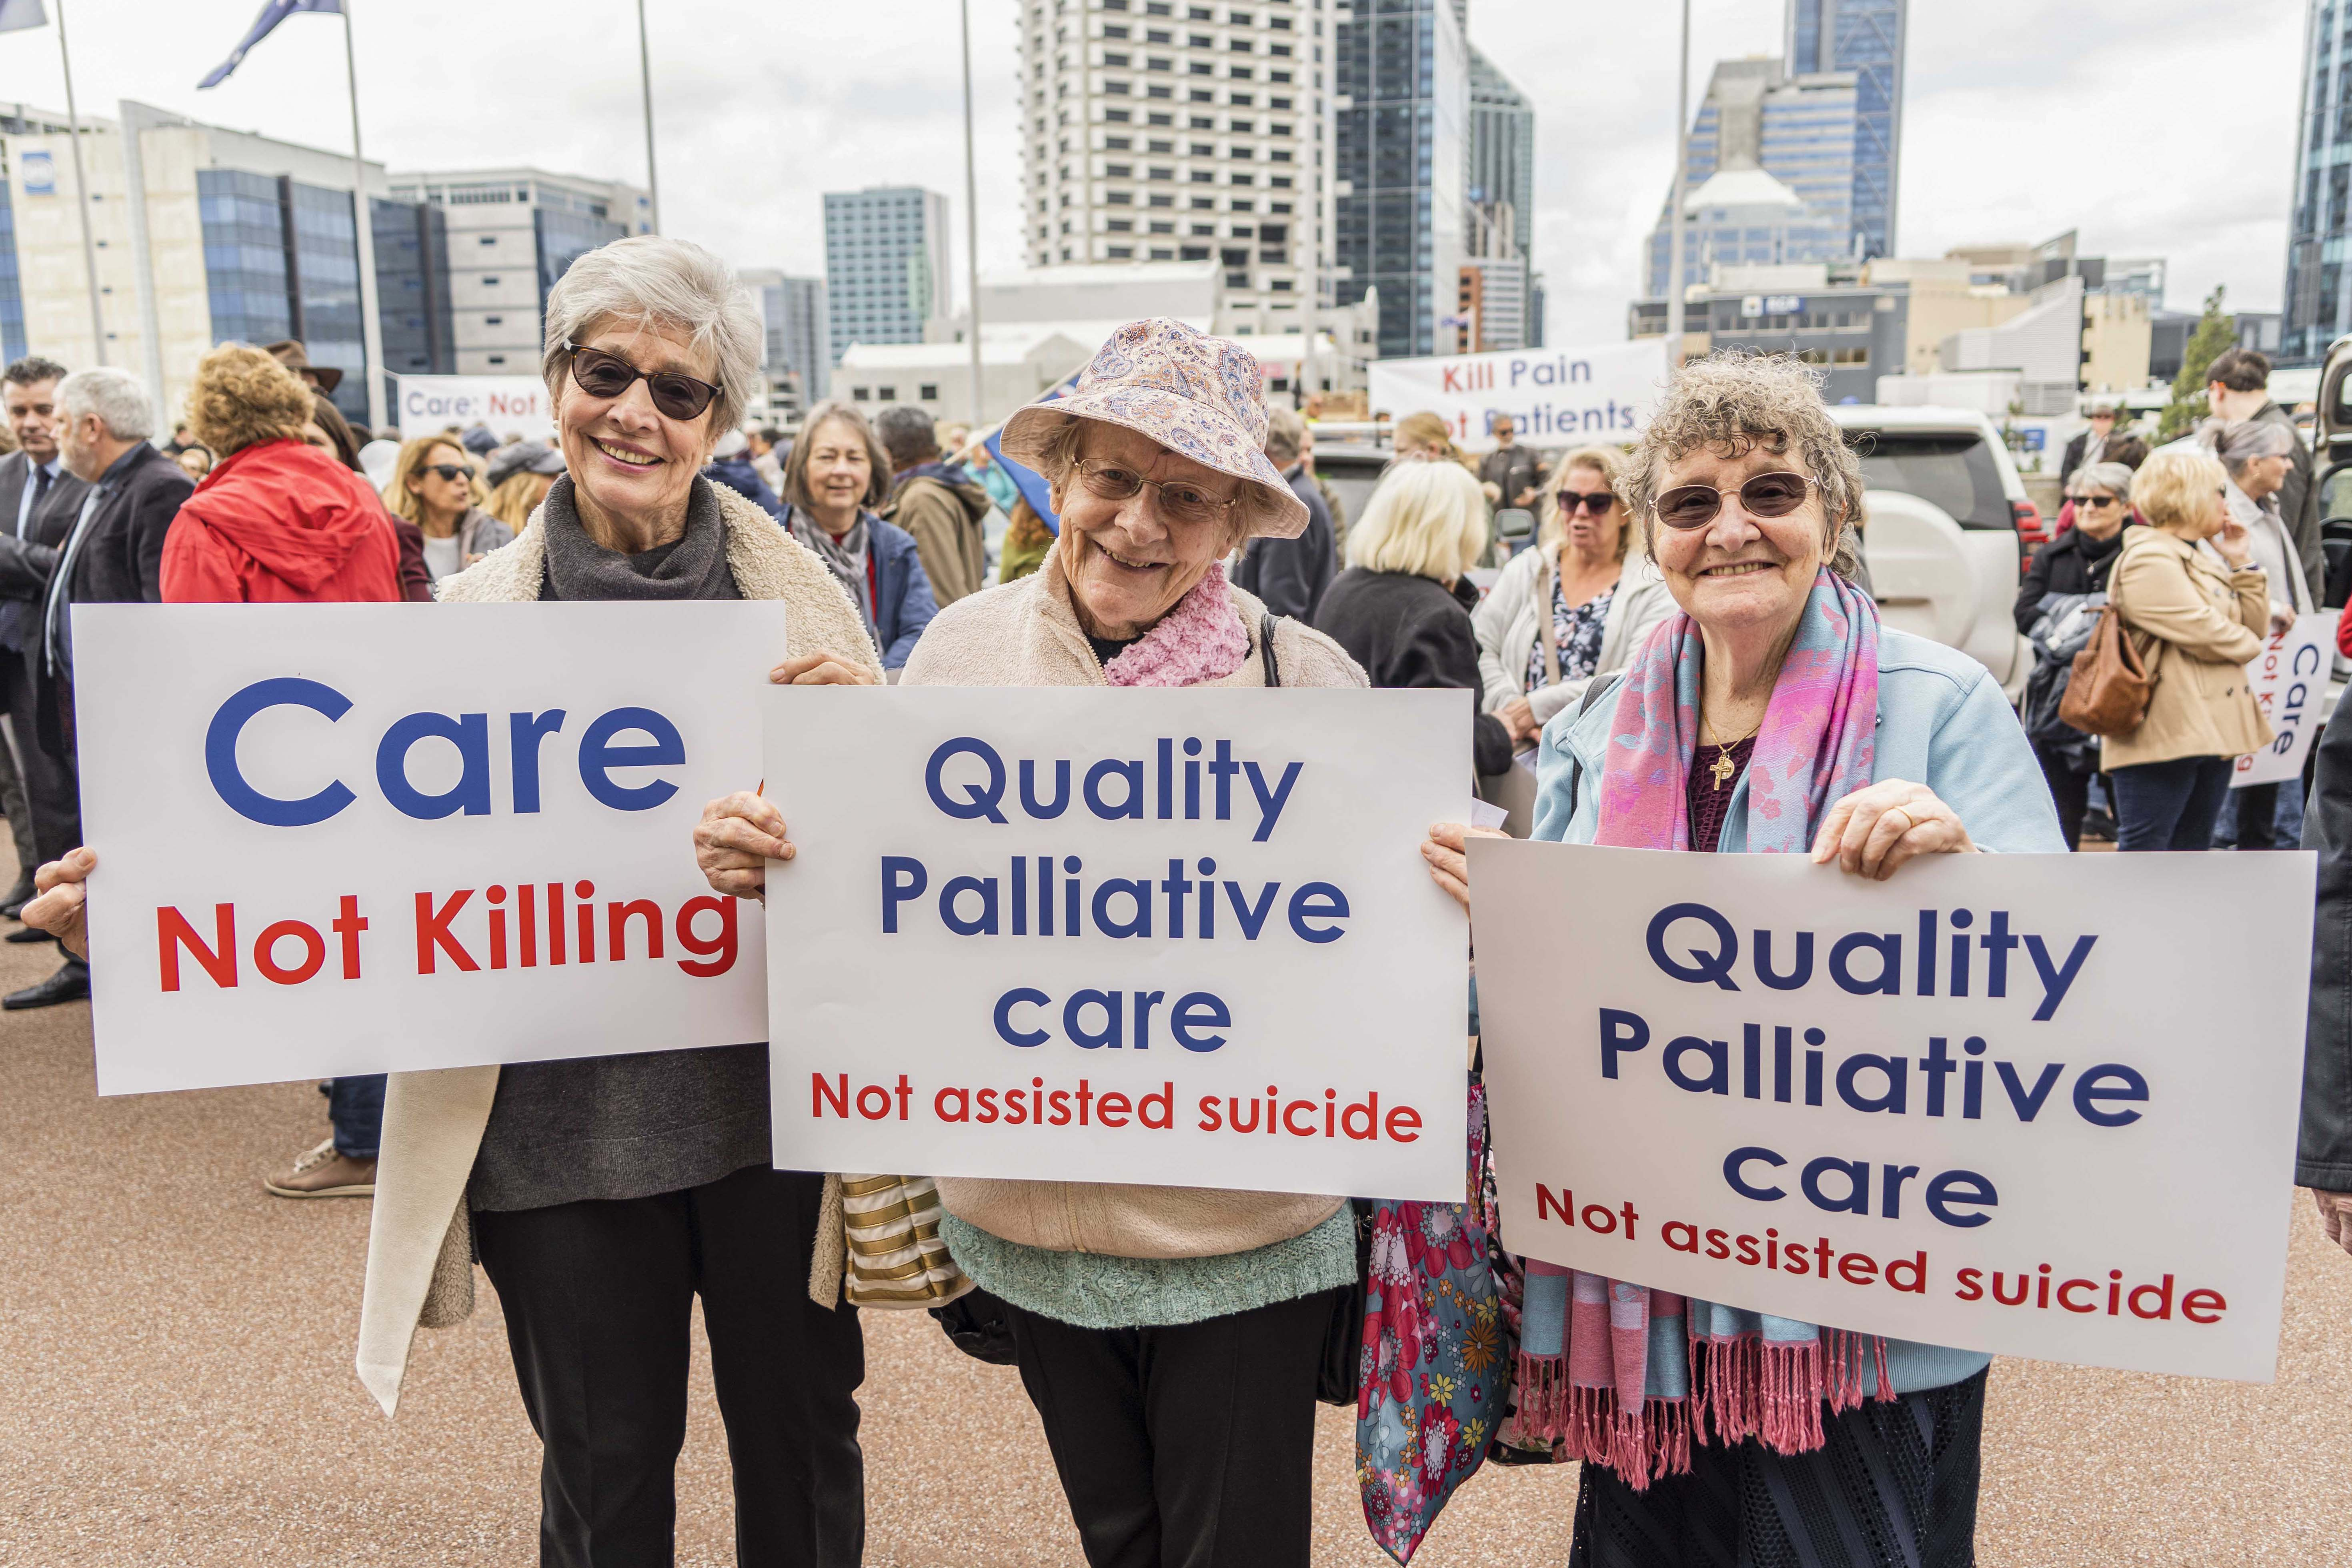 Perth Catholics recently attended a rally at Parliament House in opposition to the VAD laws. Photo: Josh Low.